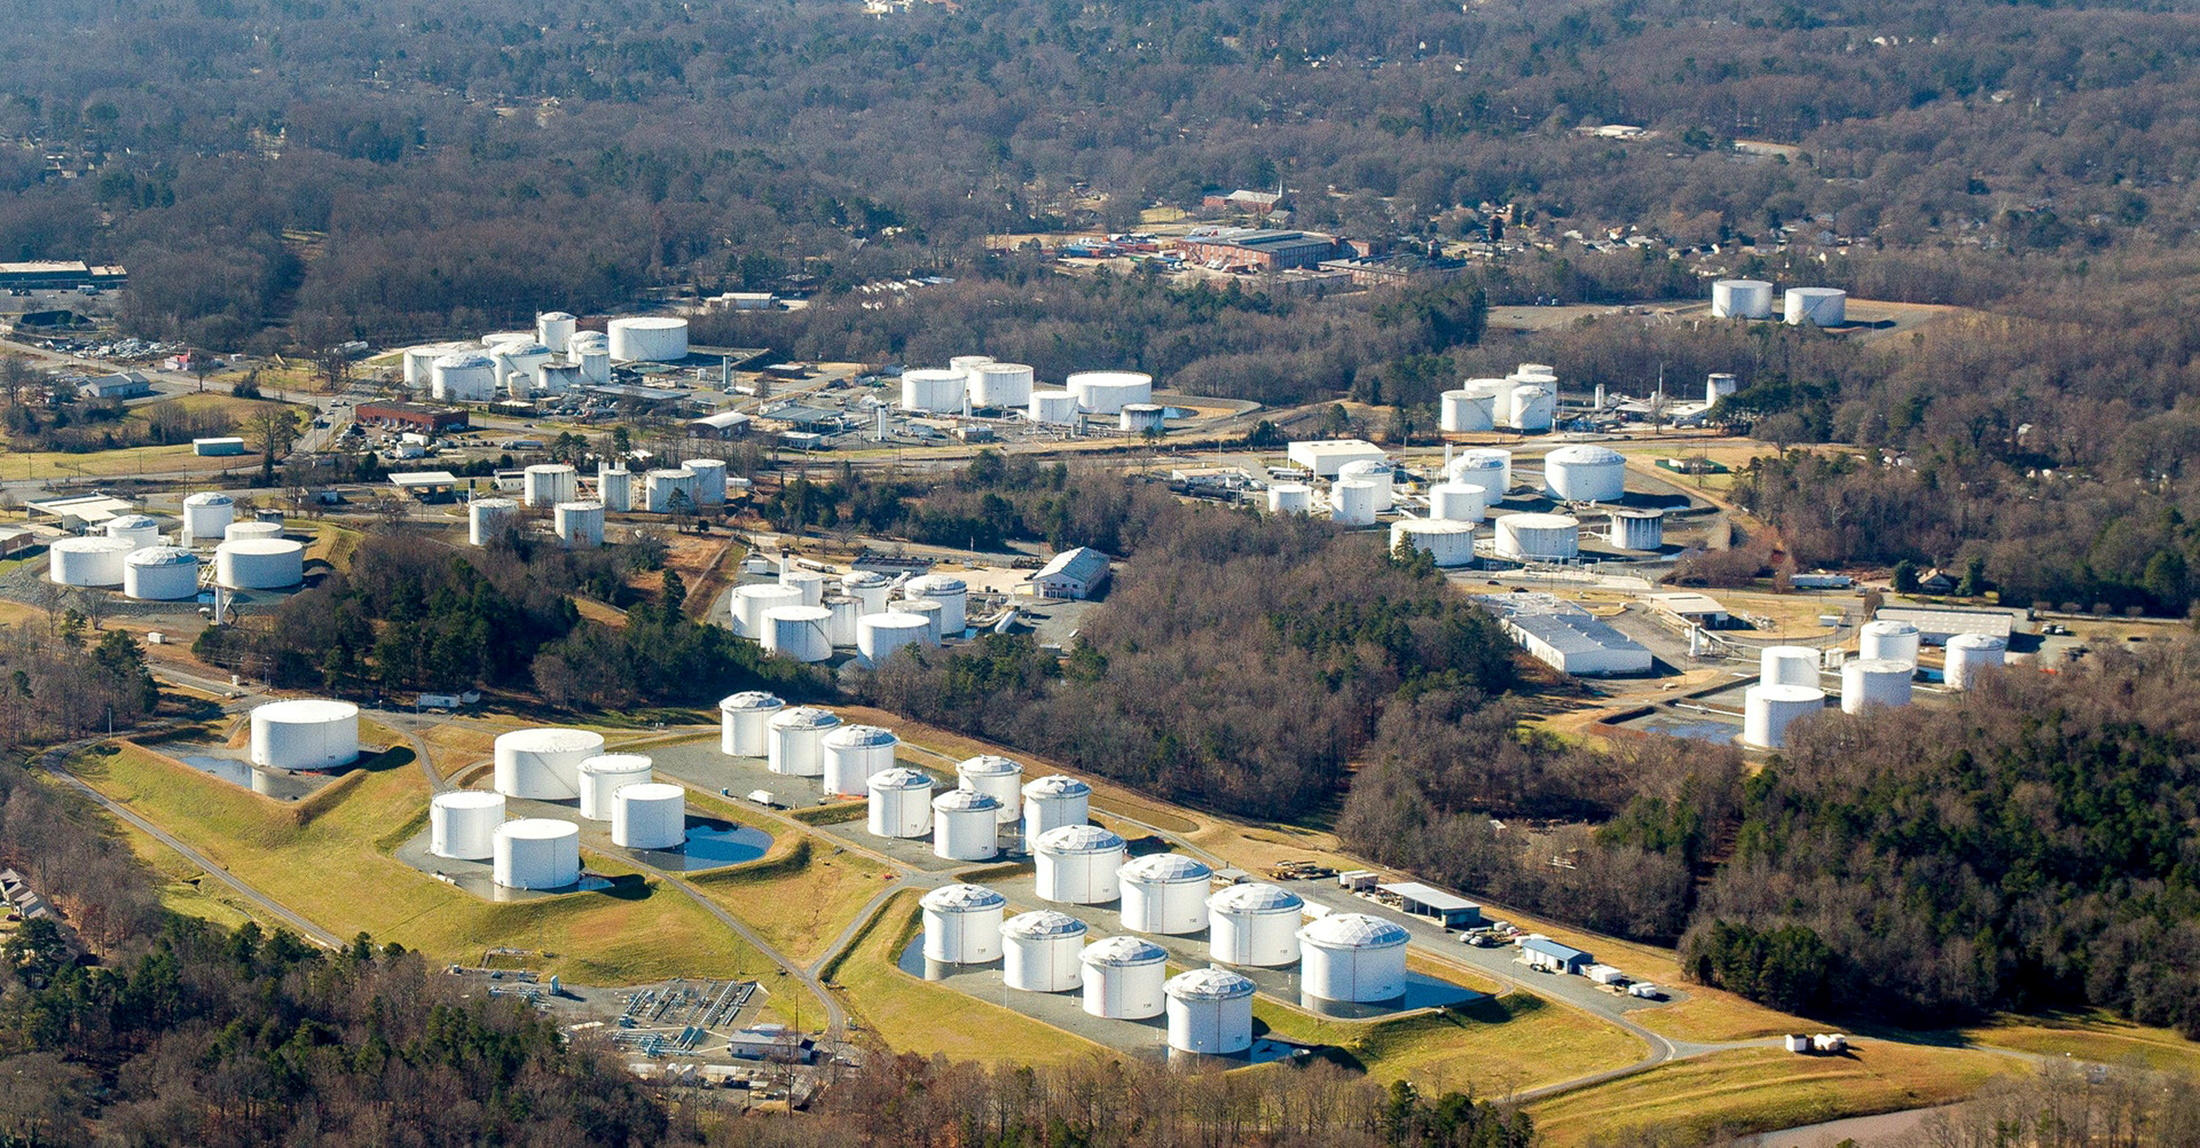 Holding tanks are seen at Colonial Pipeline's Charlotte Tank Farm in Charlotte, North Carolina, U.S. in an undated photograph.  Colonial Pipeline/Handout via REUTERS.